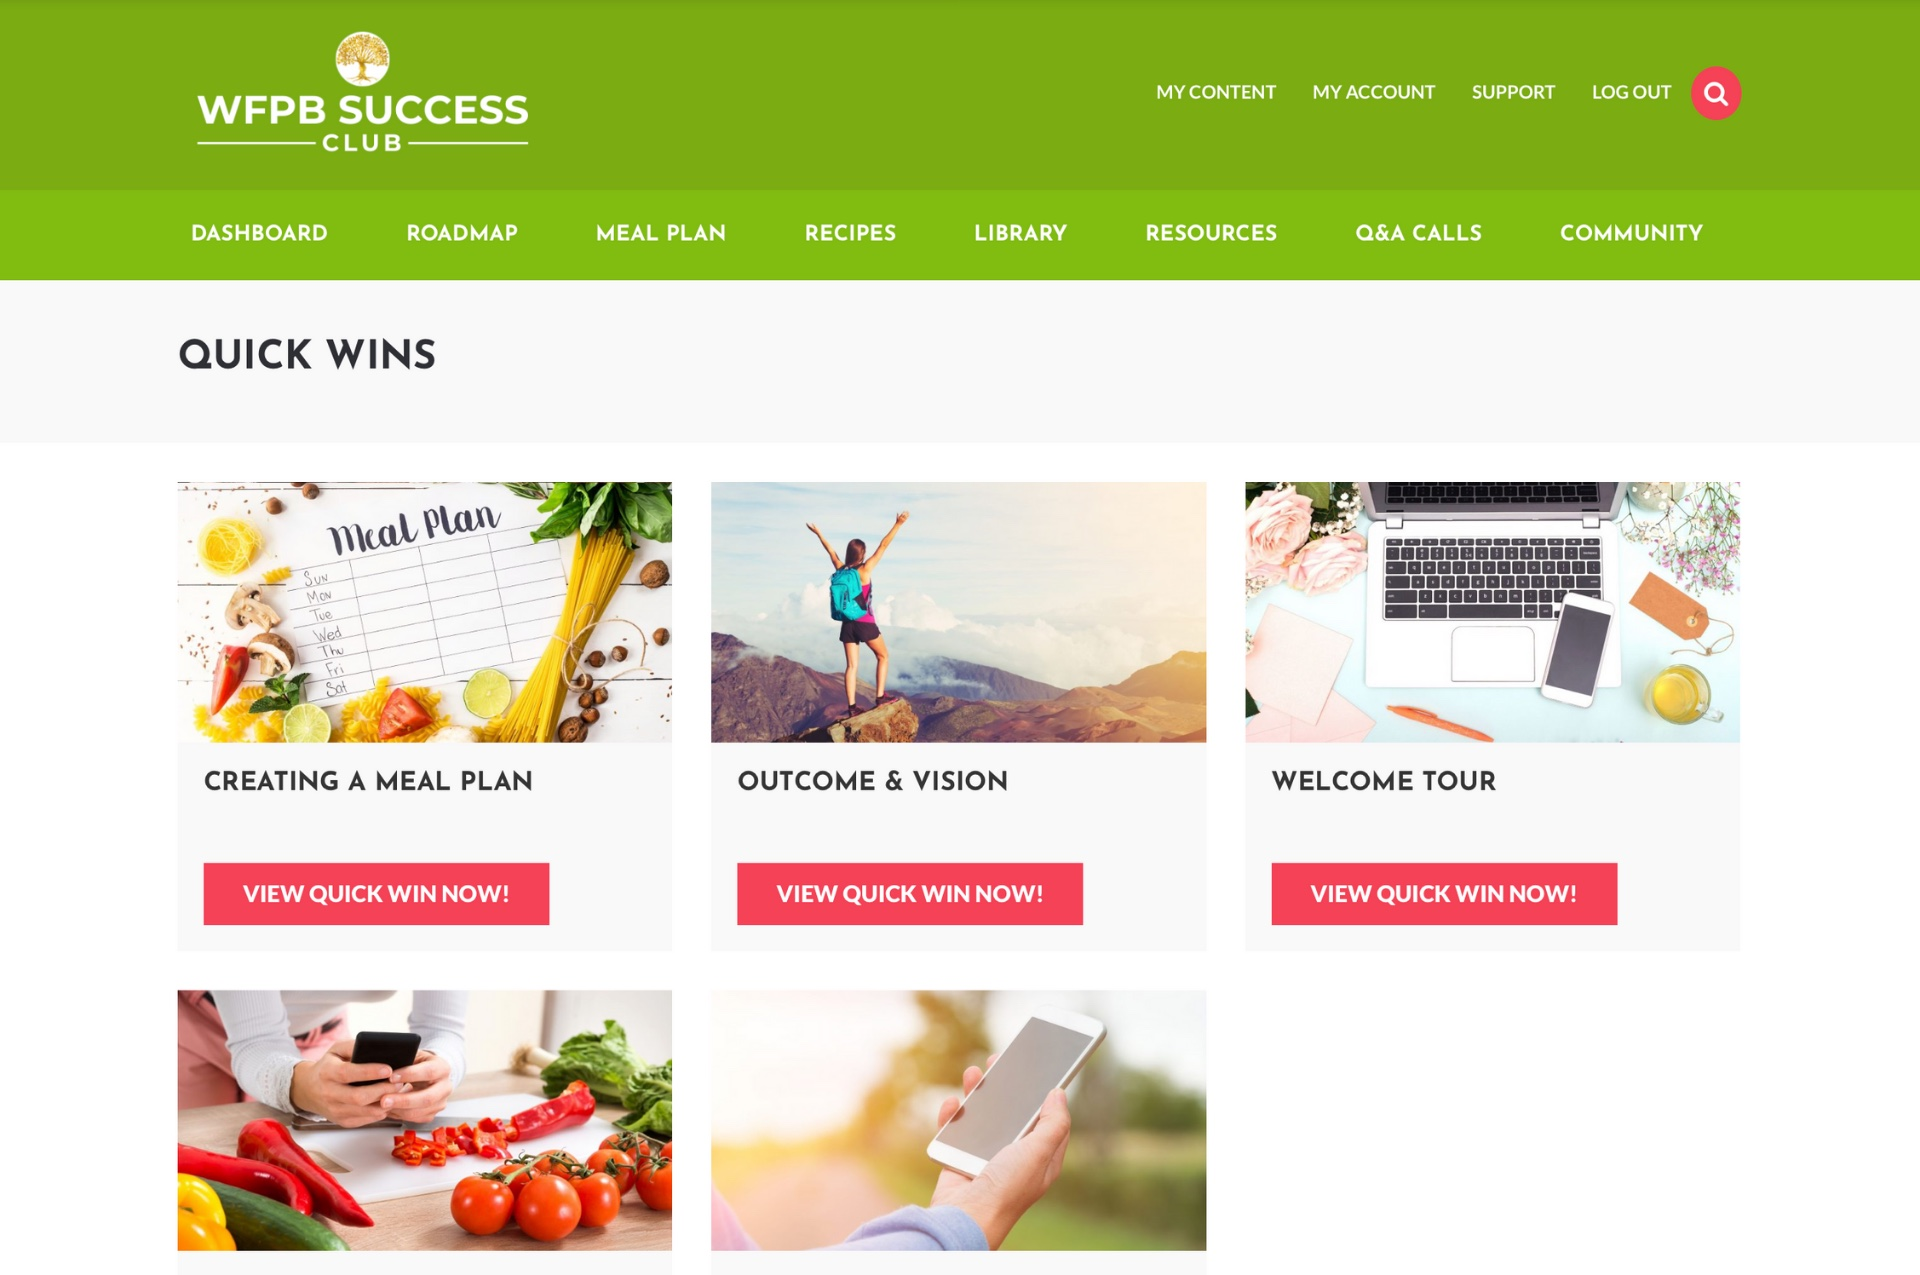 An image of the quick wins area of the WFPB Success Club.